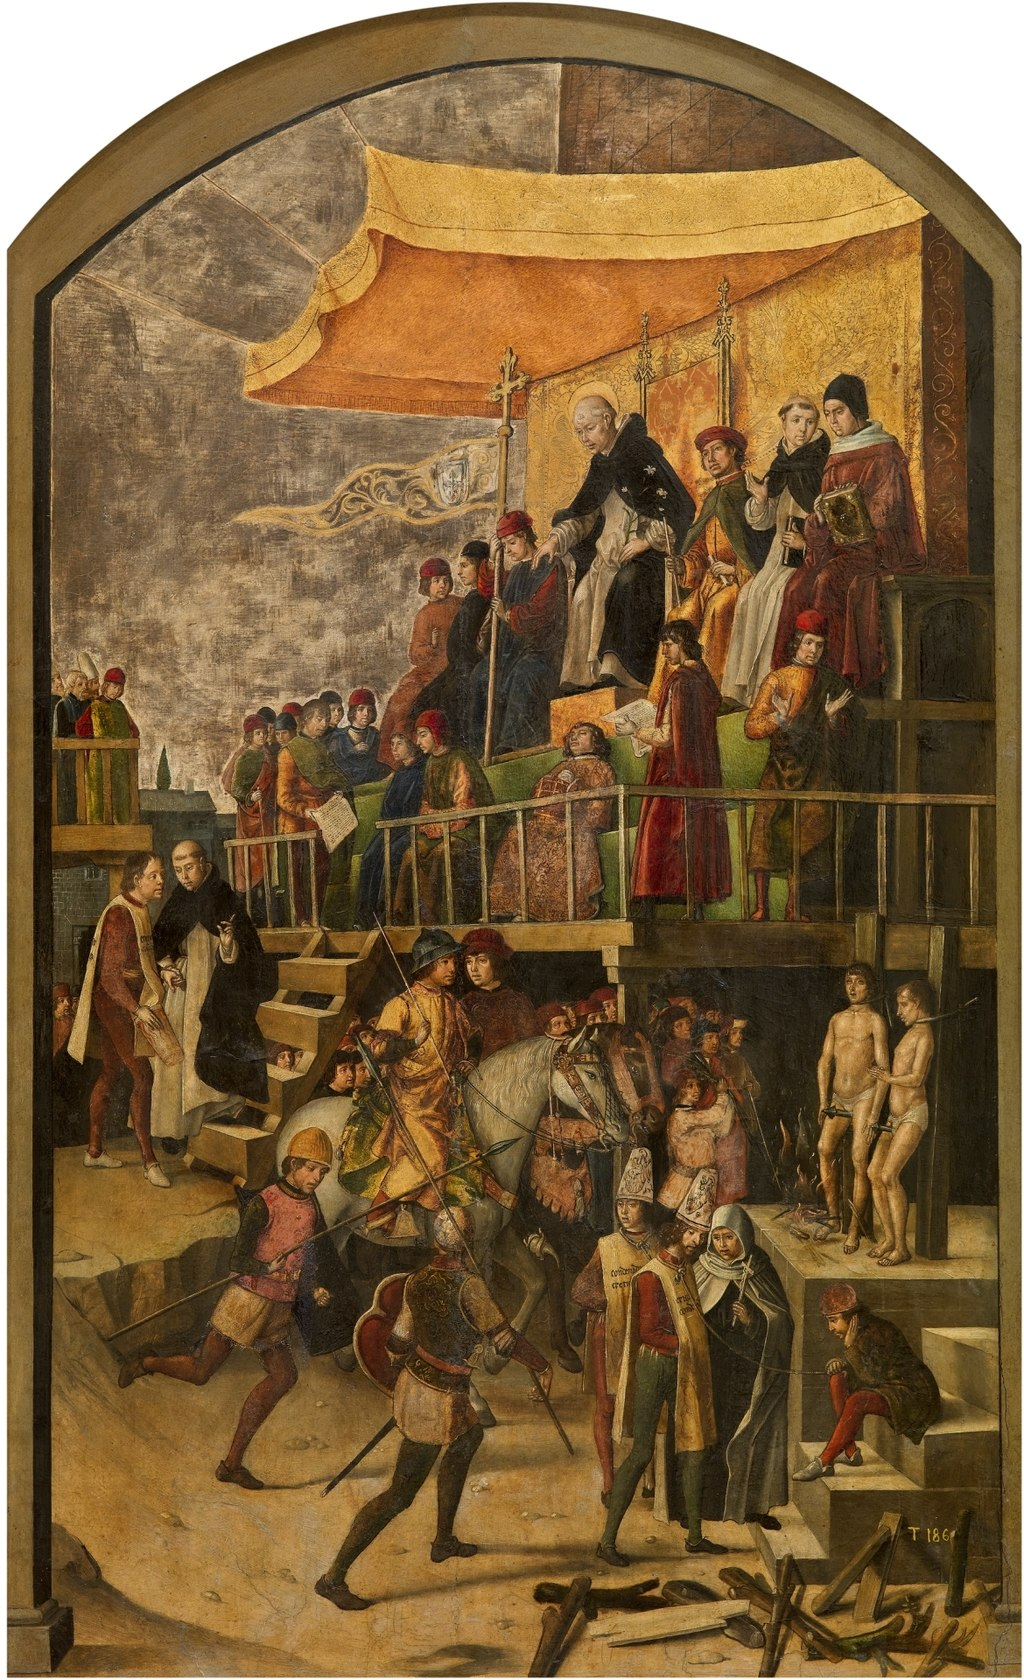 Saint Dominic presiding over an Auto-de-fe by Pedro Berruguete.